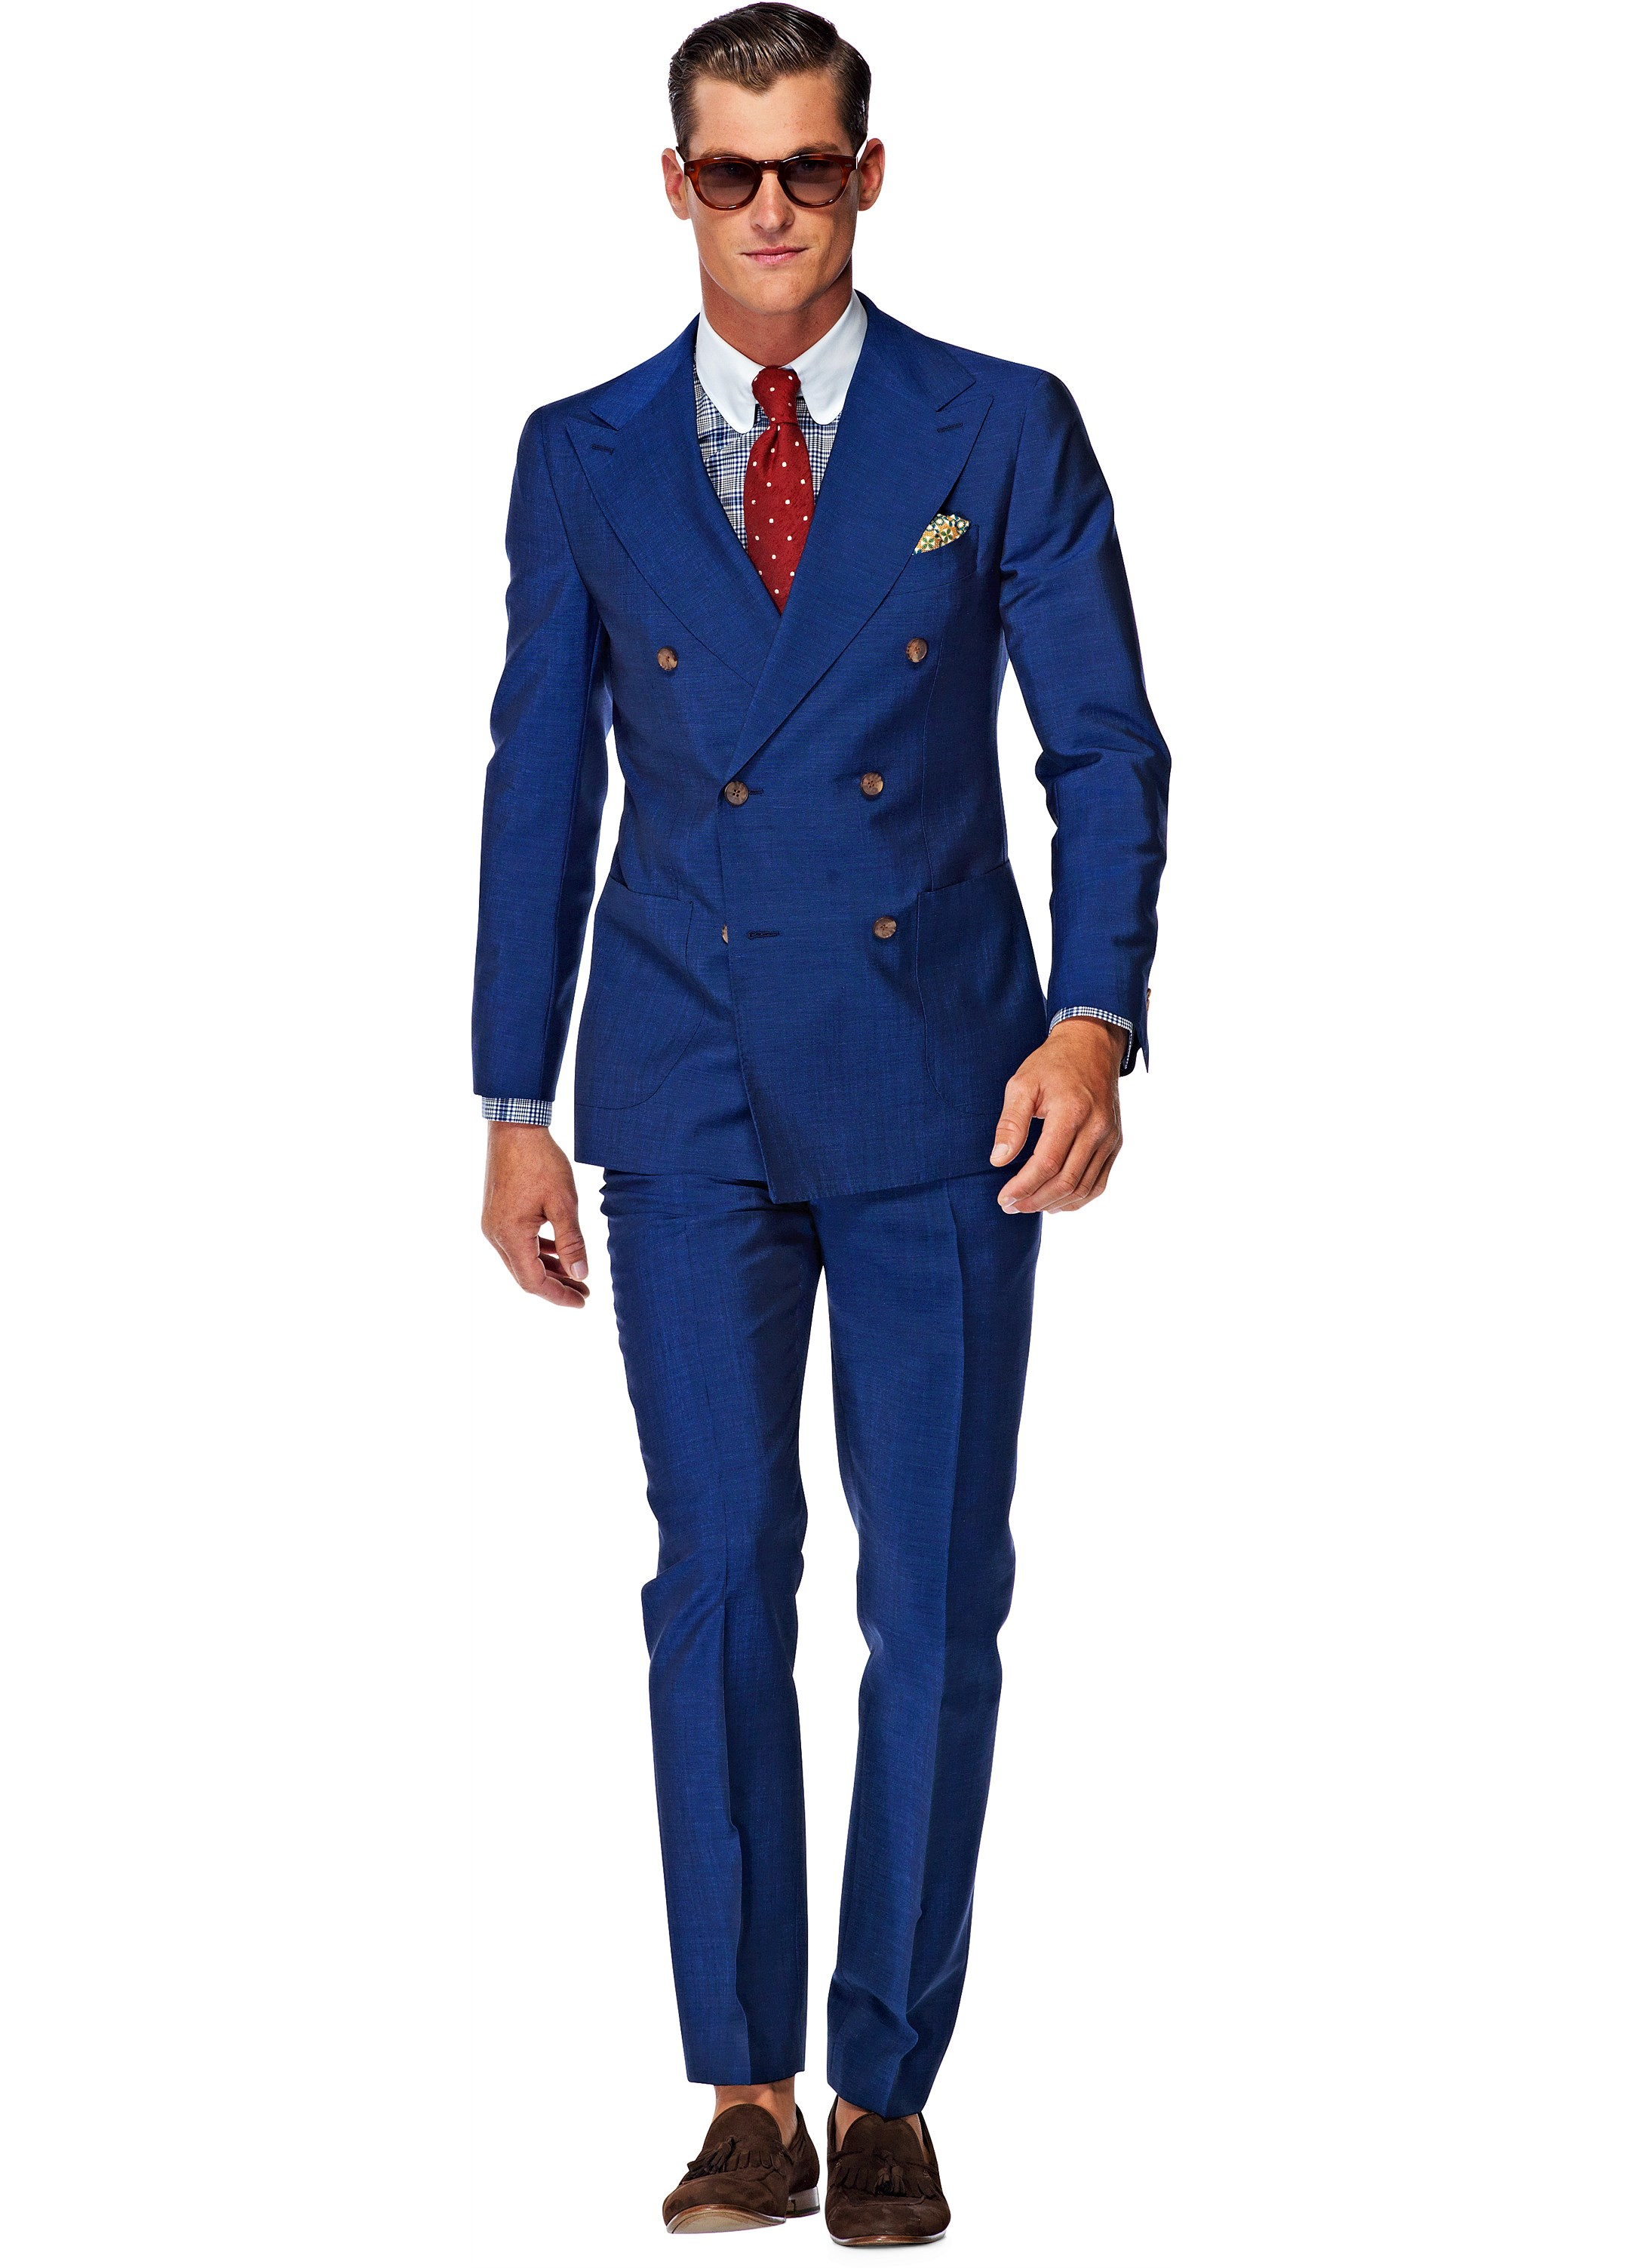 Suit Supply €359 – Madison Blue Suit | Killer Fashion